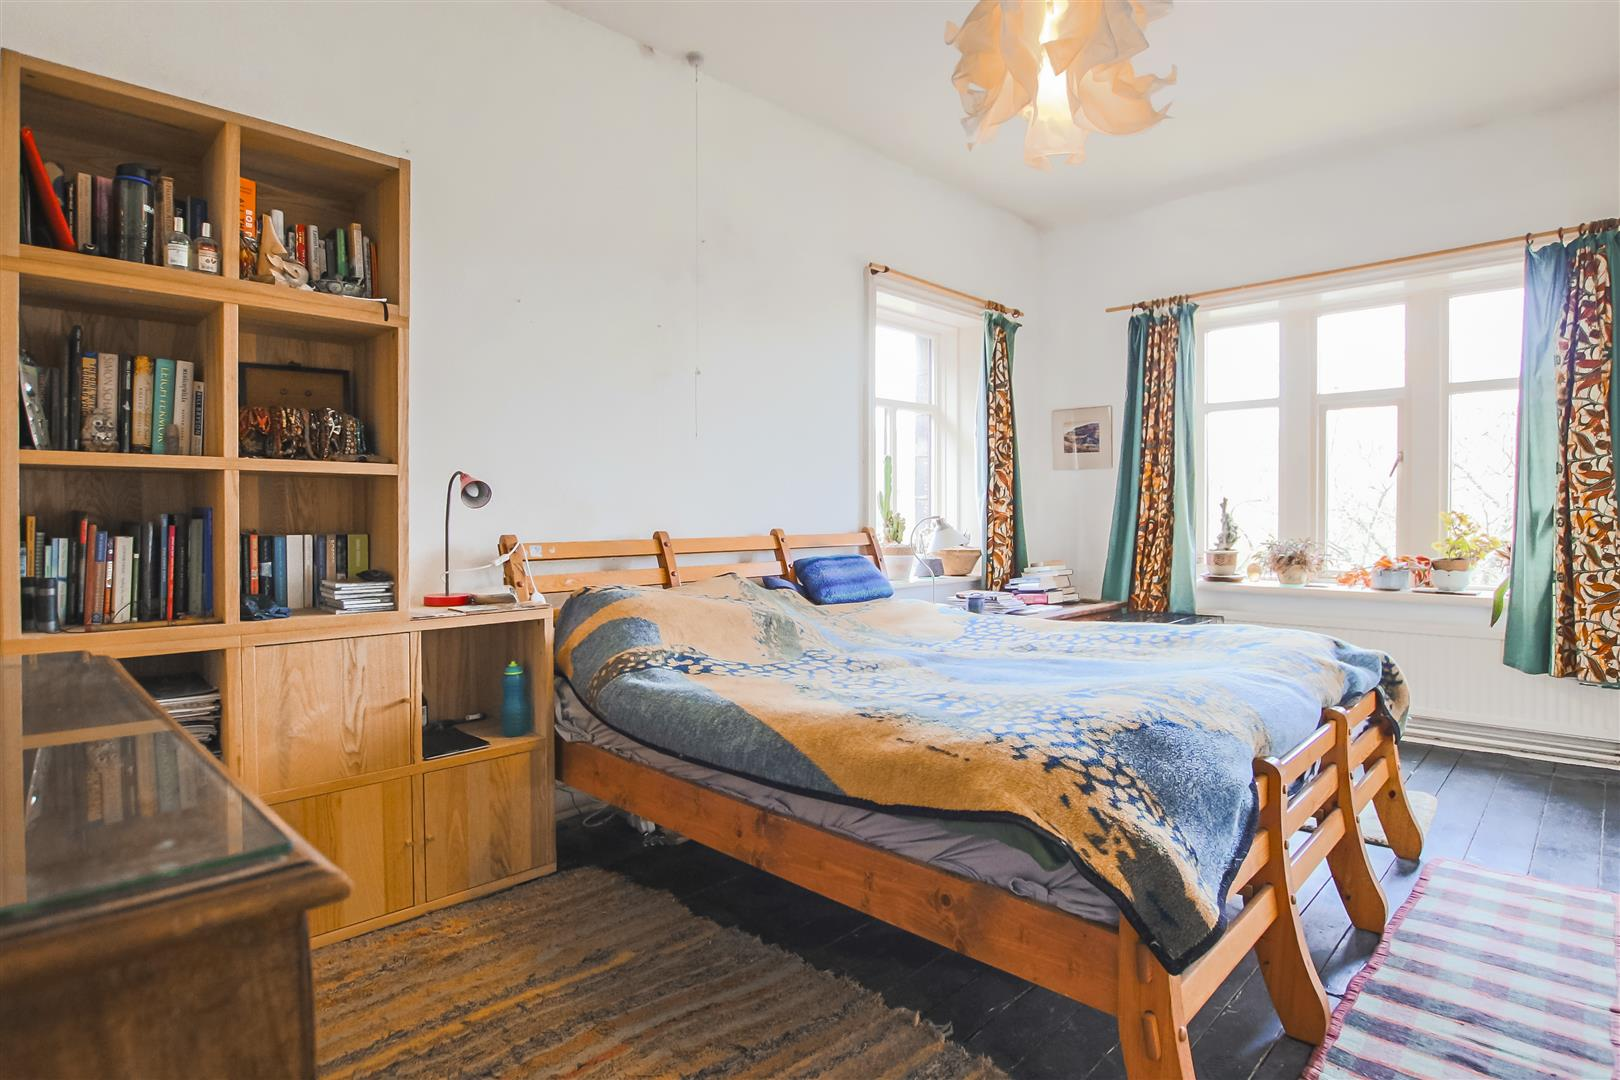 5 Bedroom Farmhouse For Sale - Image 47